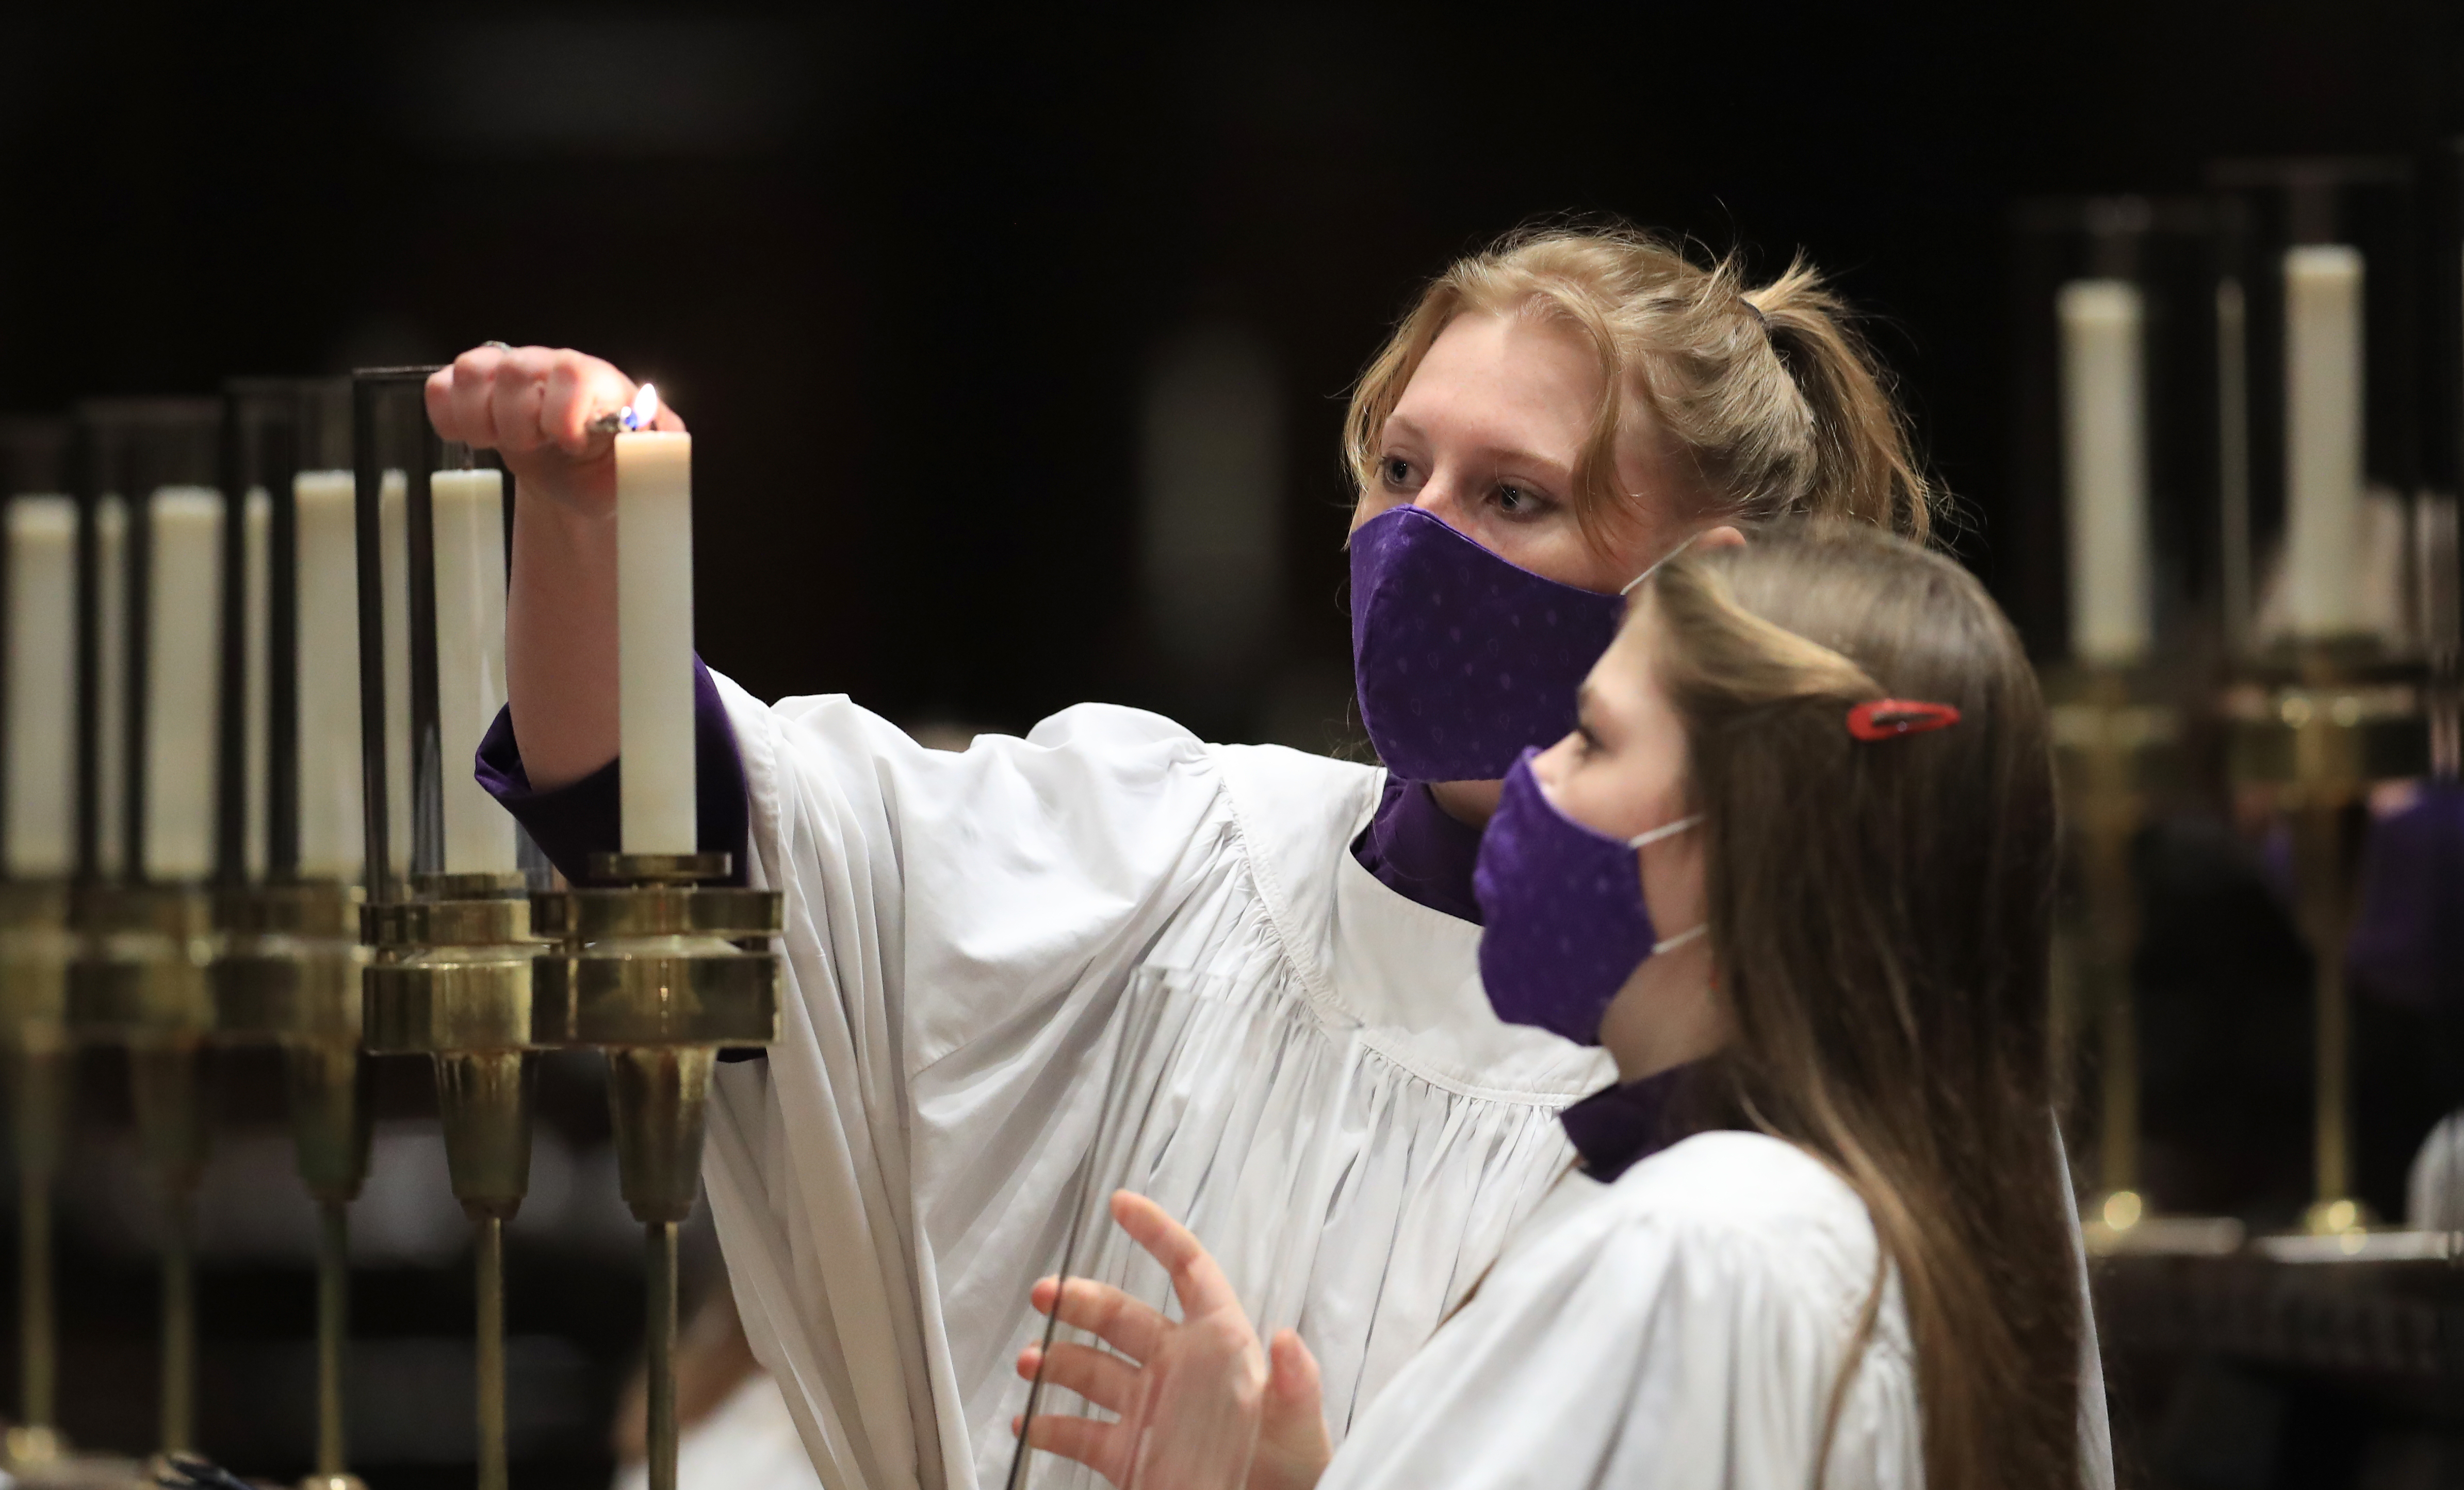 Members of the Canterbury Cathedral GirlsÕ Choir prepare to film the last of three pre-recorded online carol services which will be available to viewers on the cathedral website over the Christmas period. (Photo by Gareth Fuller/PA Images via Getty Images)